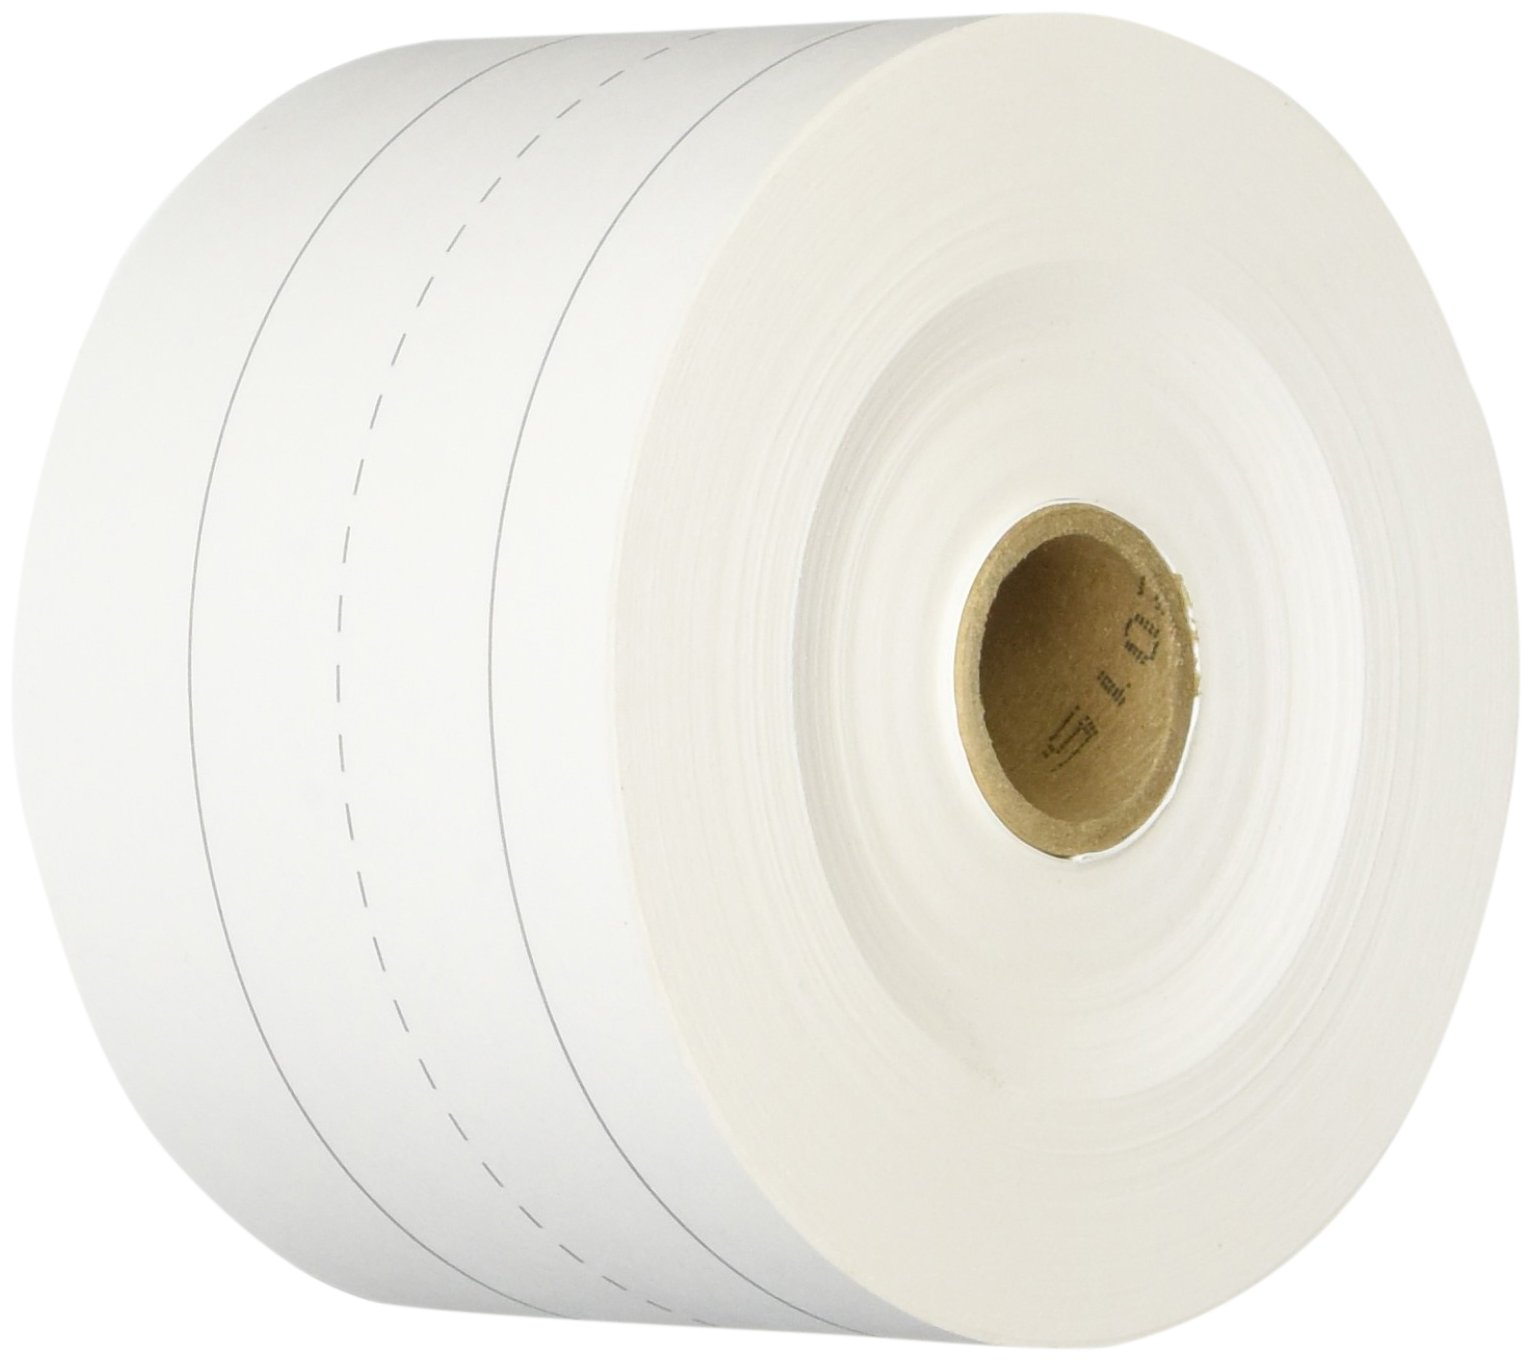 School Smart Sentence Strip Rolls - White Tag - 3 inch x 200 feet